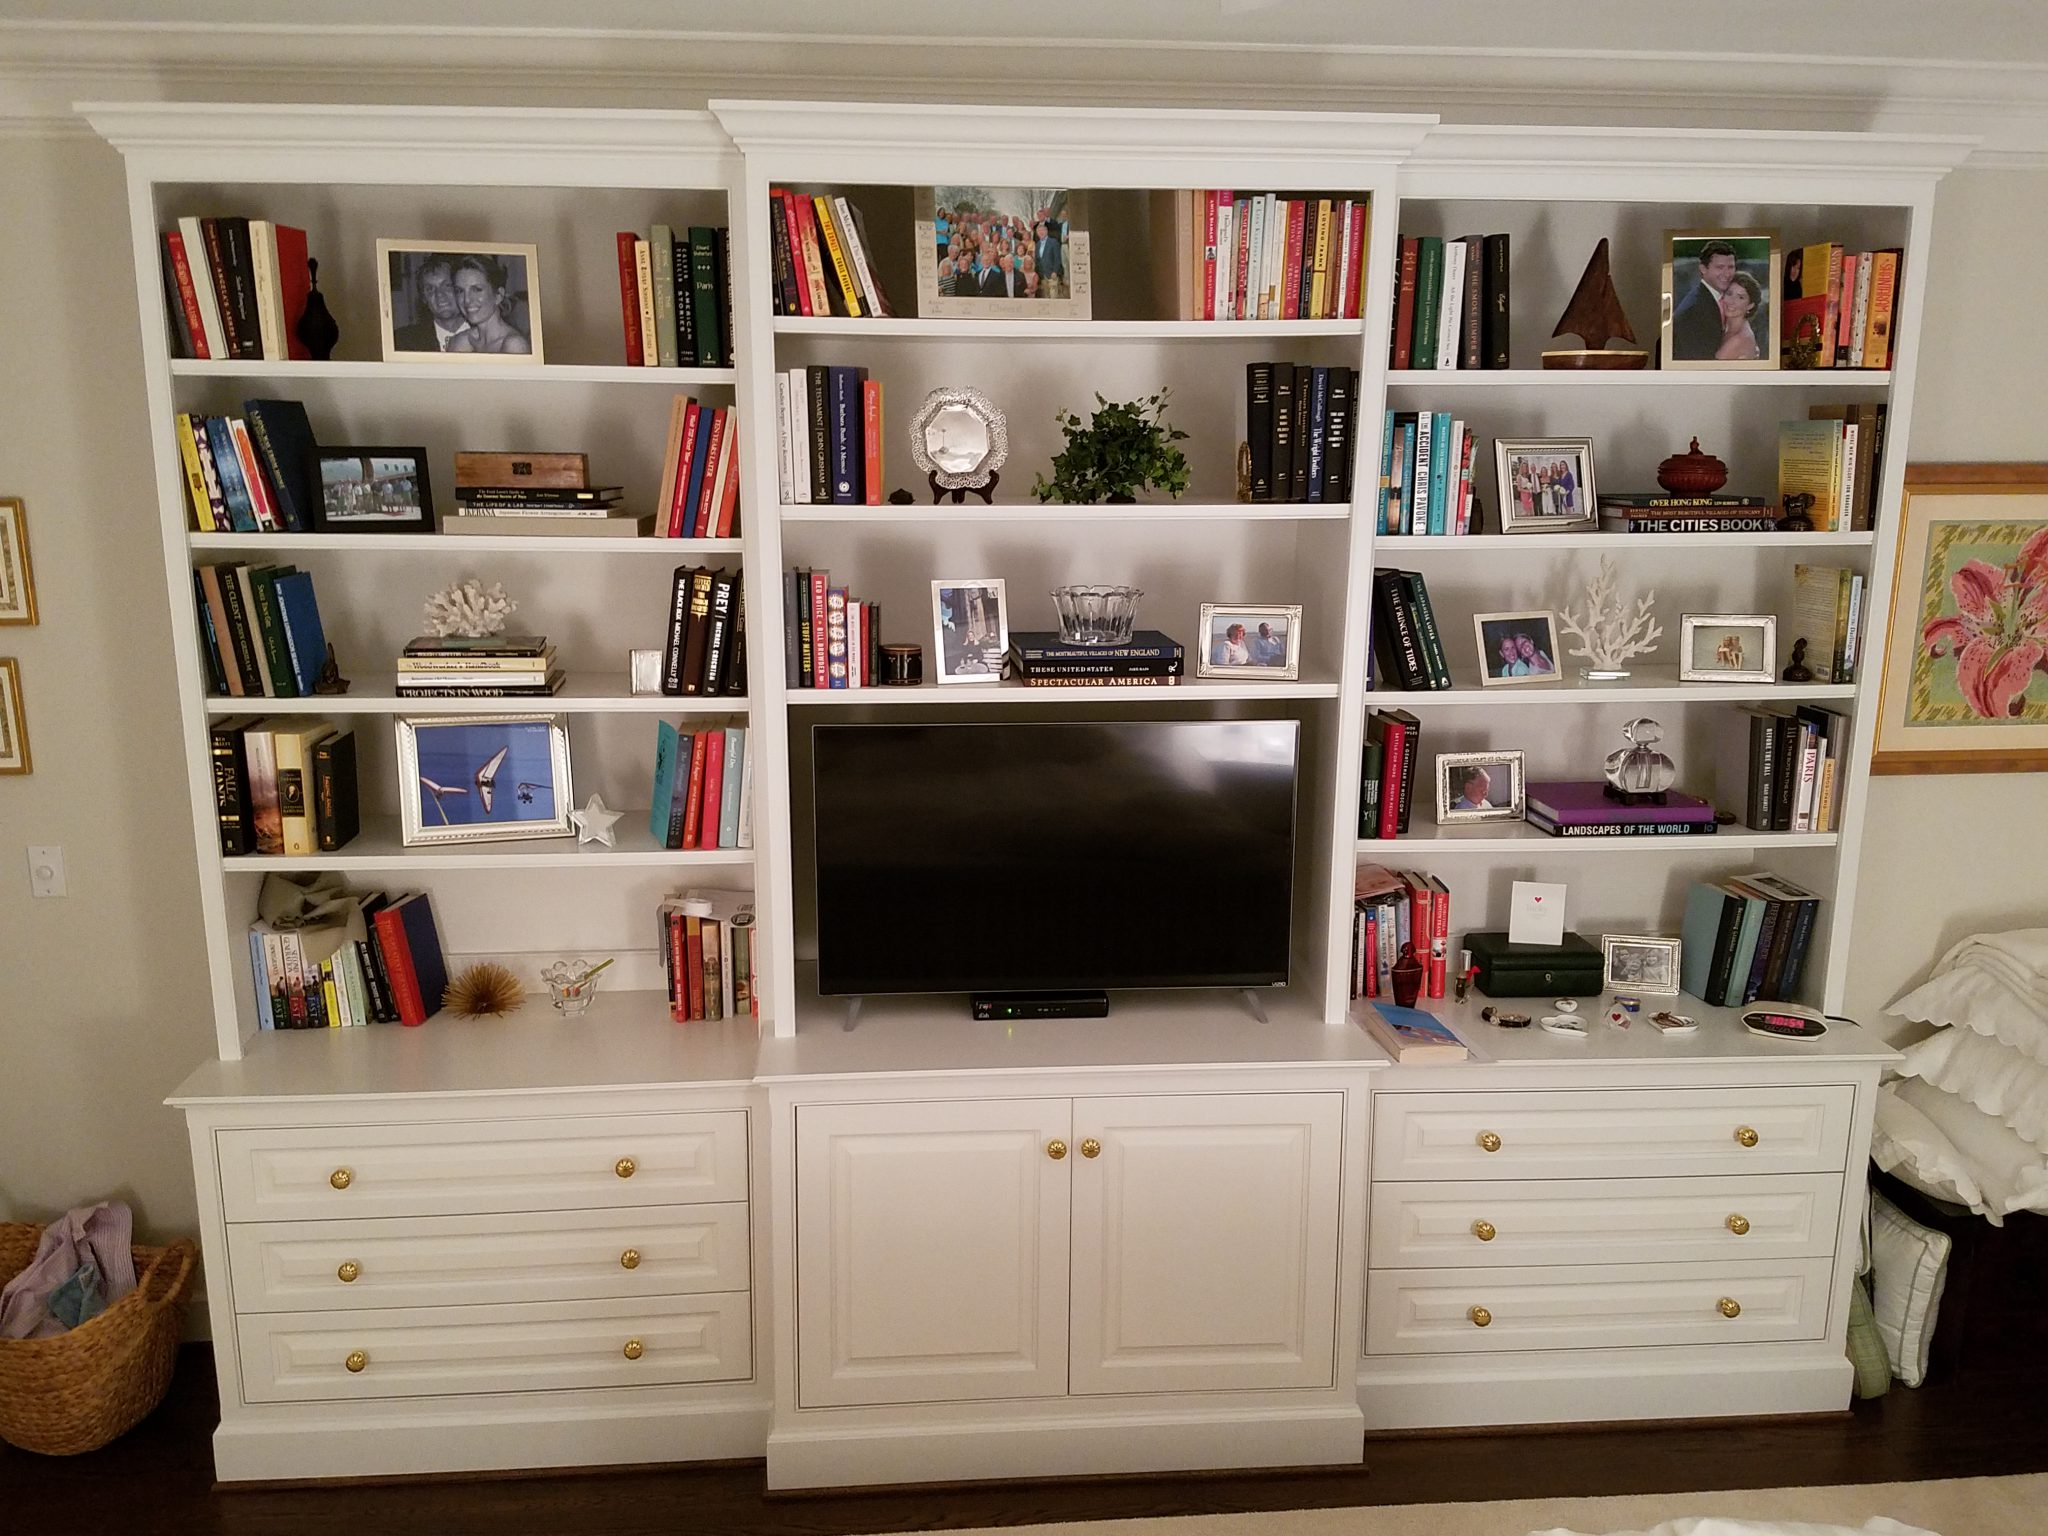 Built-in bookcase with entertainment and storage